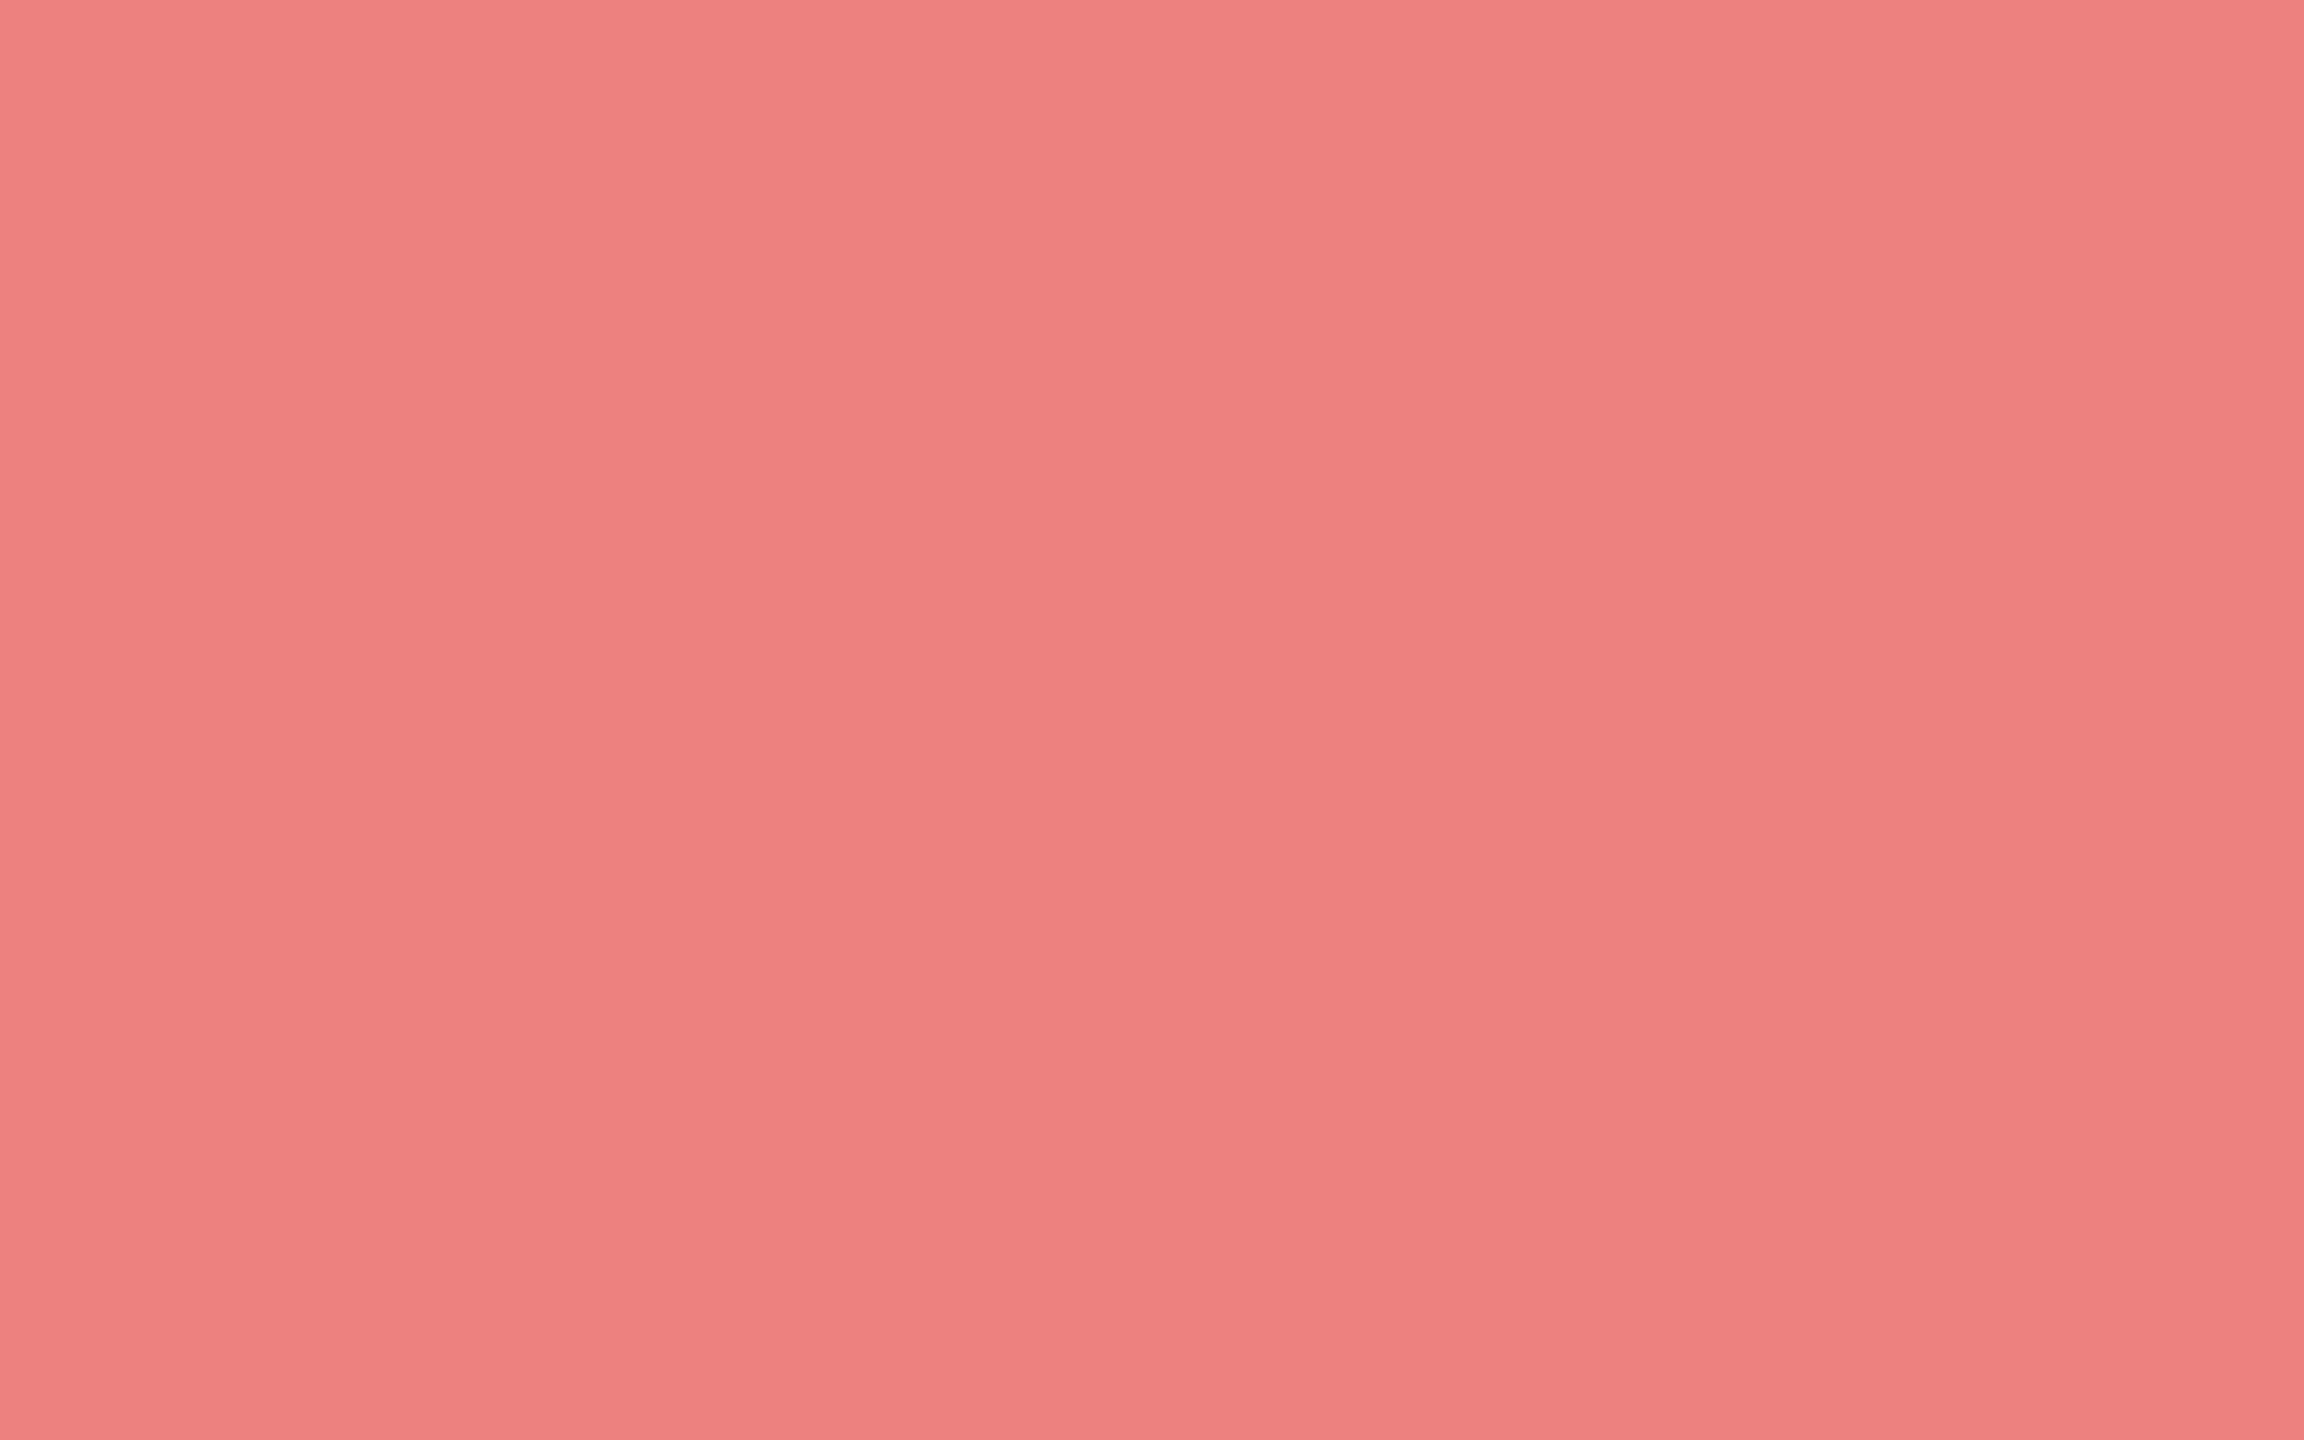 2304x1440 Light Coral Solid Color Background